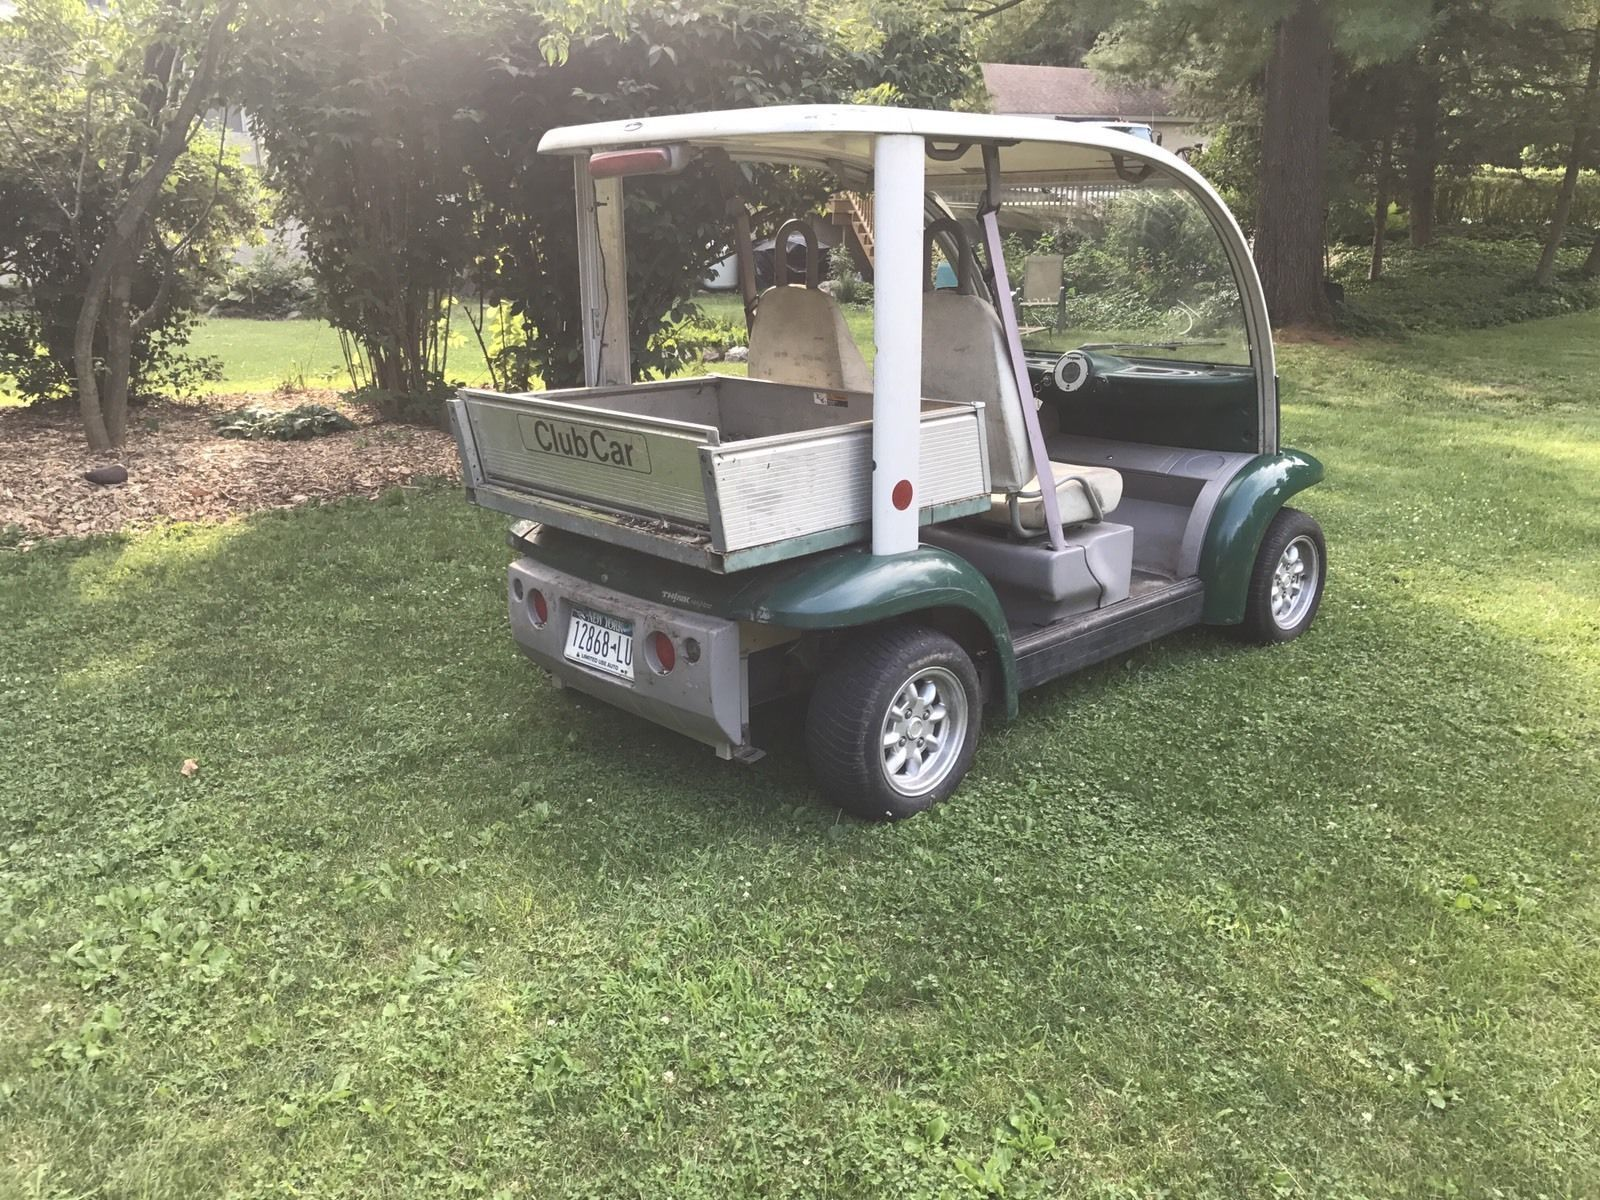 2002 ford think golf cart nev pickup truck new batteries road legal clean title